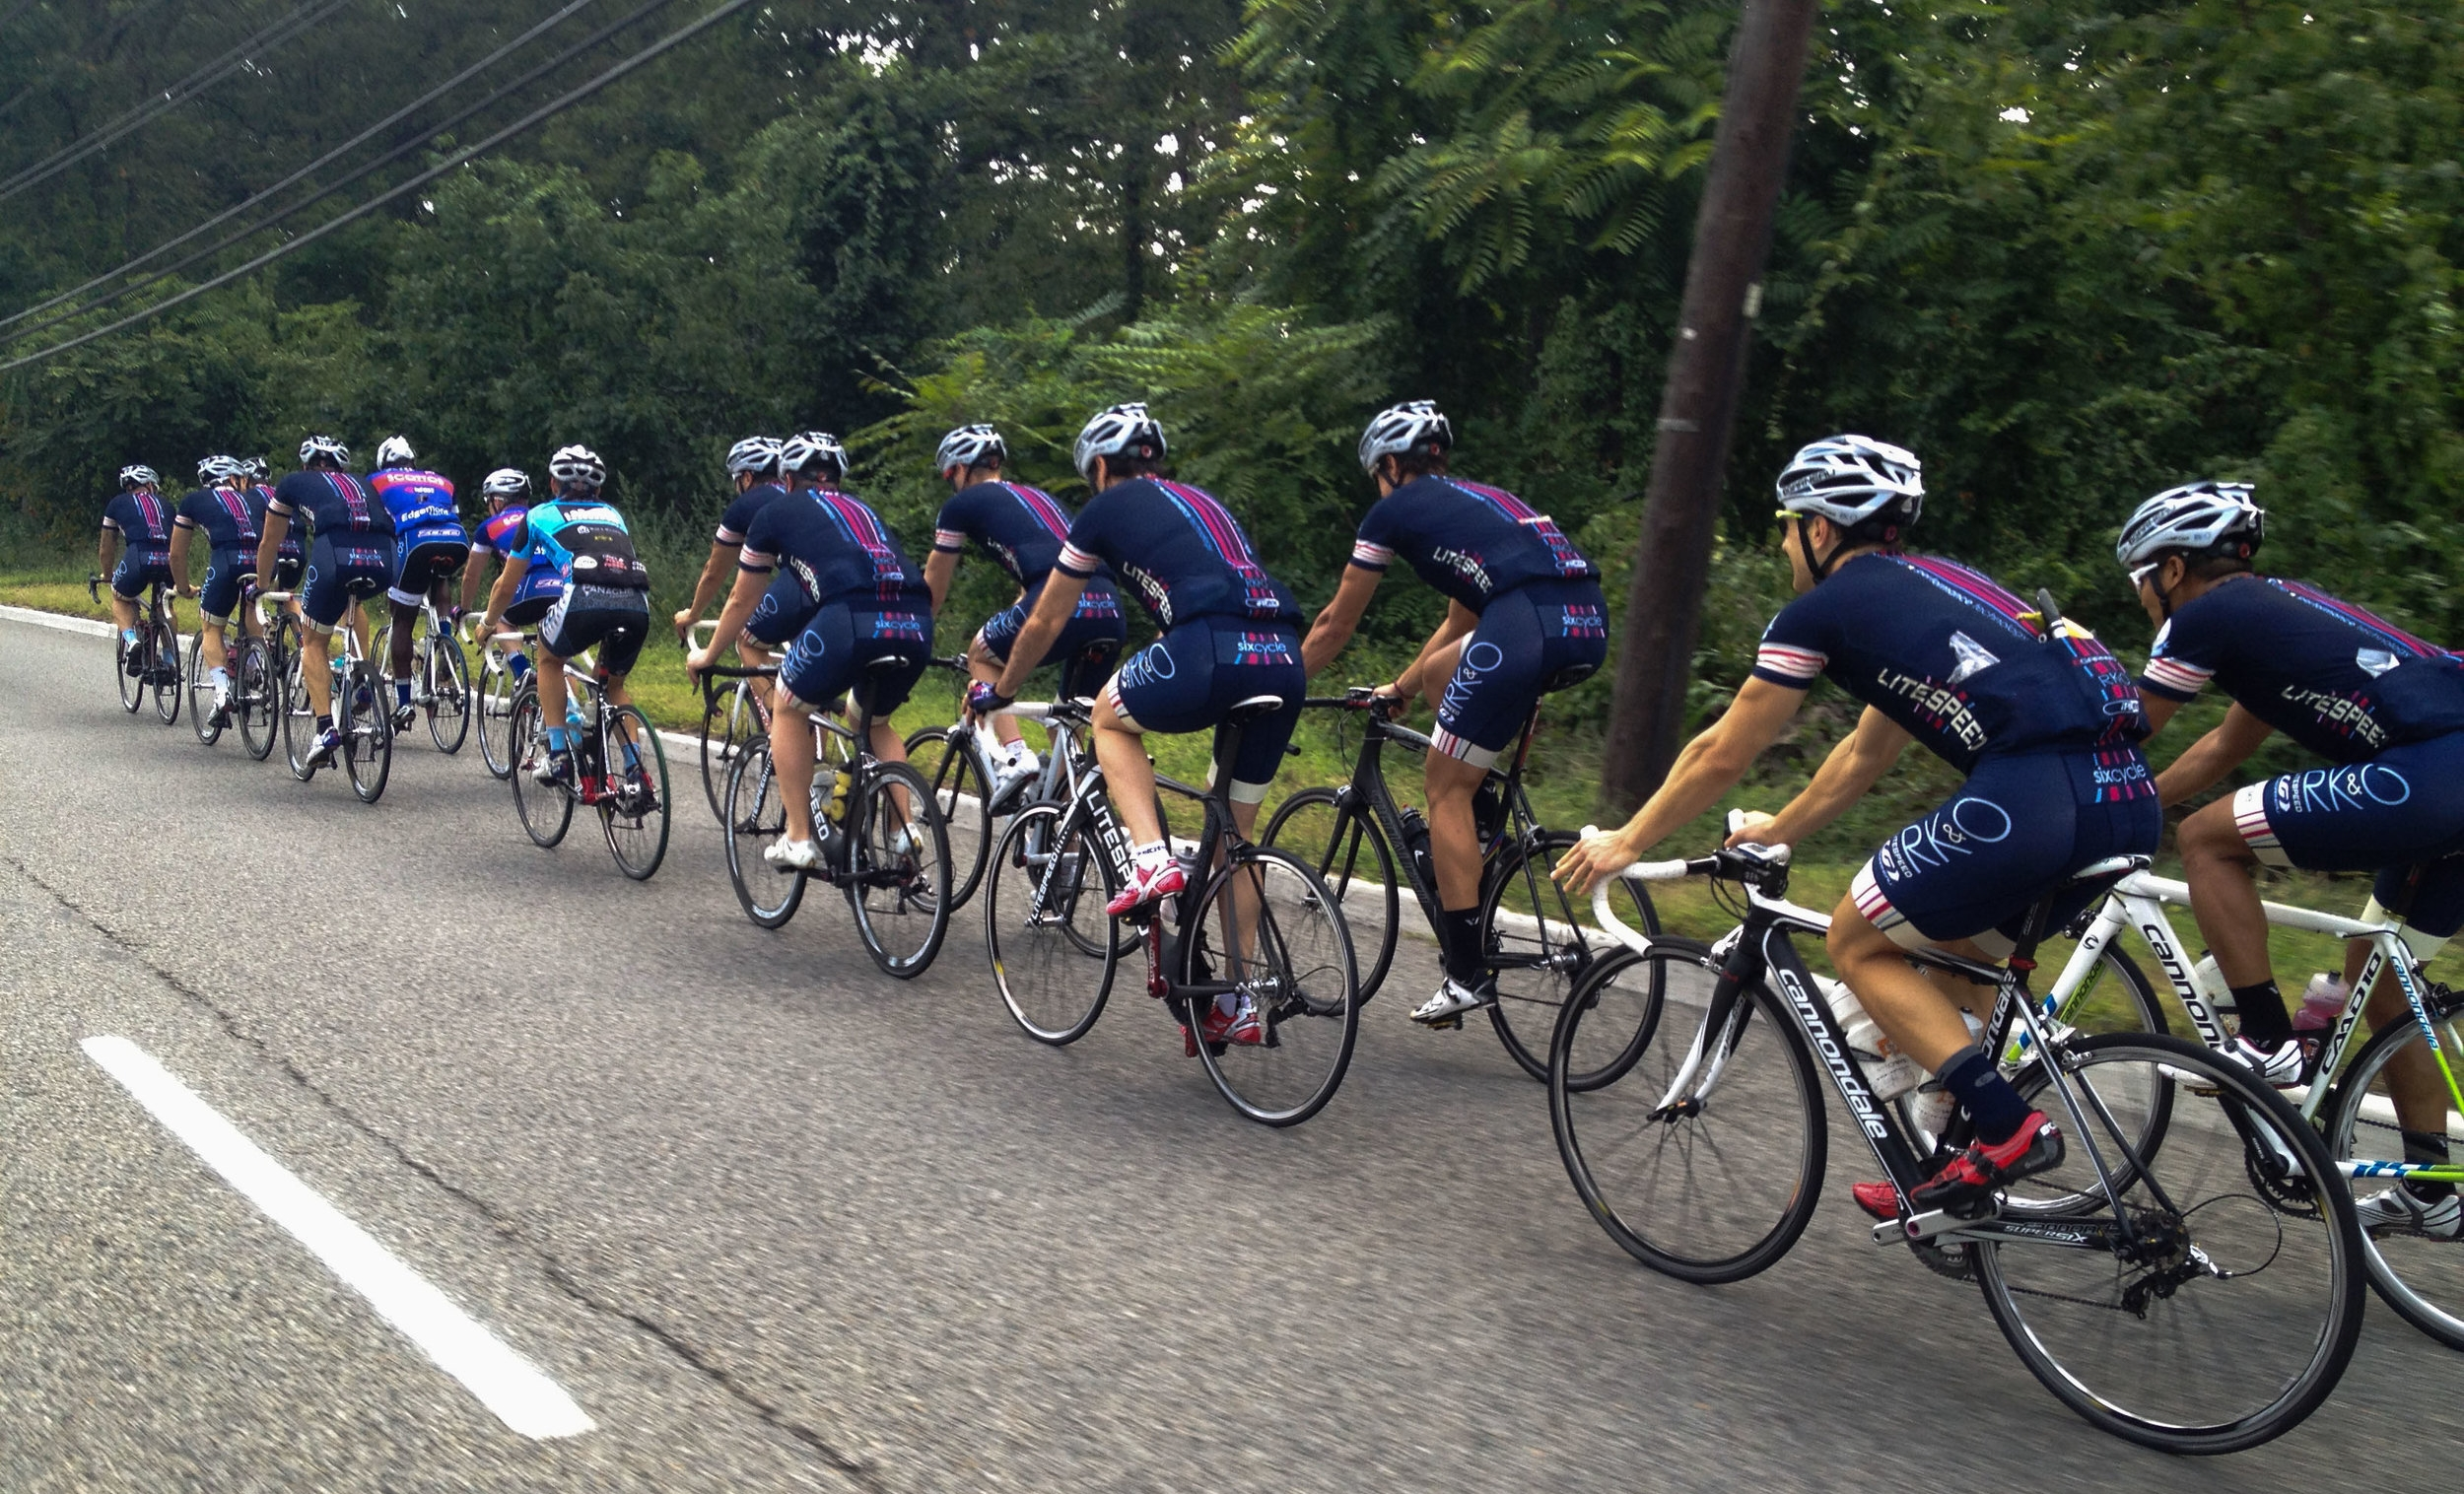 The squad rolling deep on 9W circa 2012 including a number of riders, including co-founders Charlie Bird and Matthew Richard, who have since left the sport or relocated to distant shores.